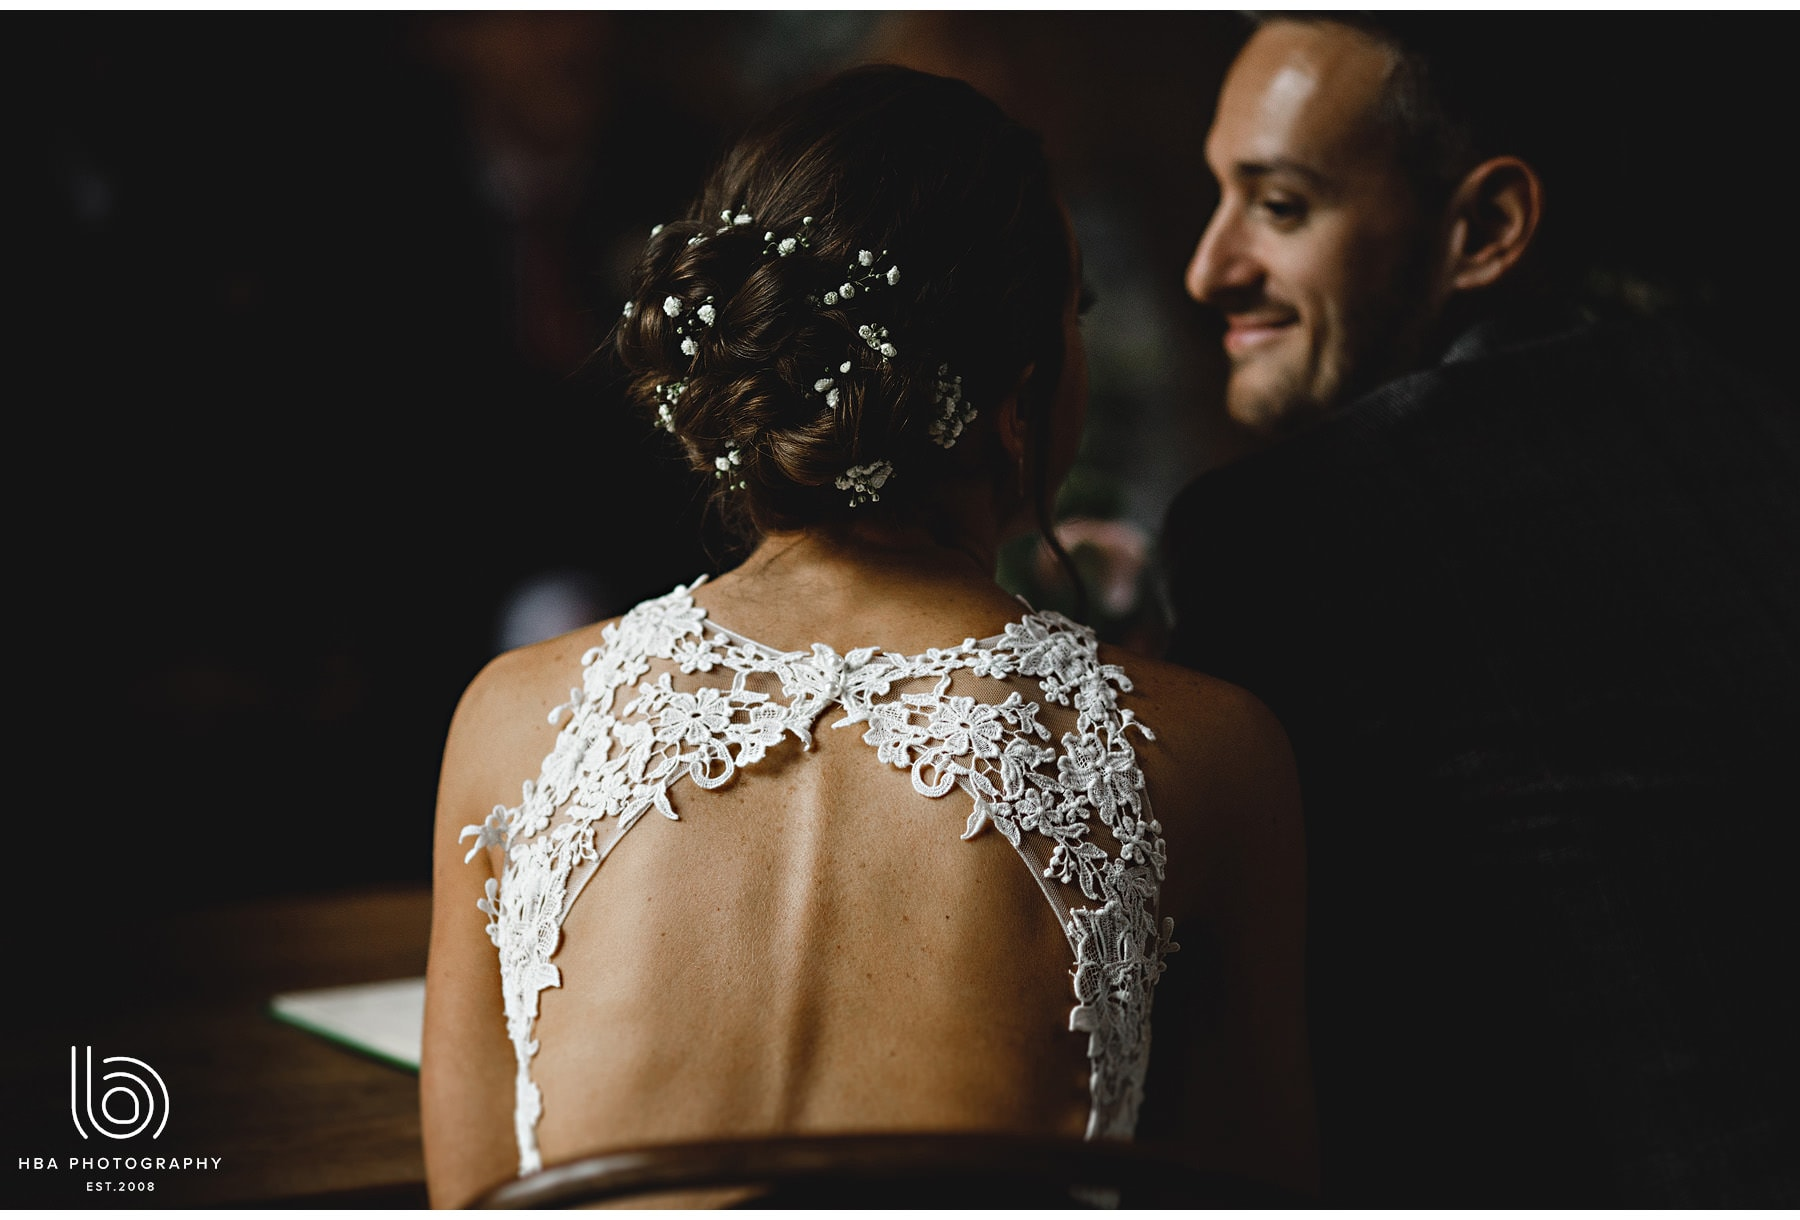 the back of the brides dress